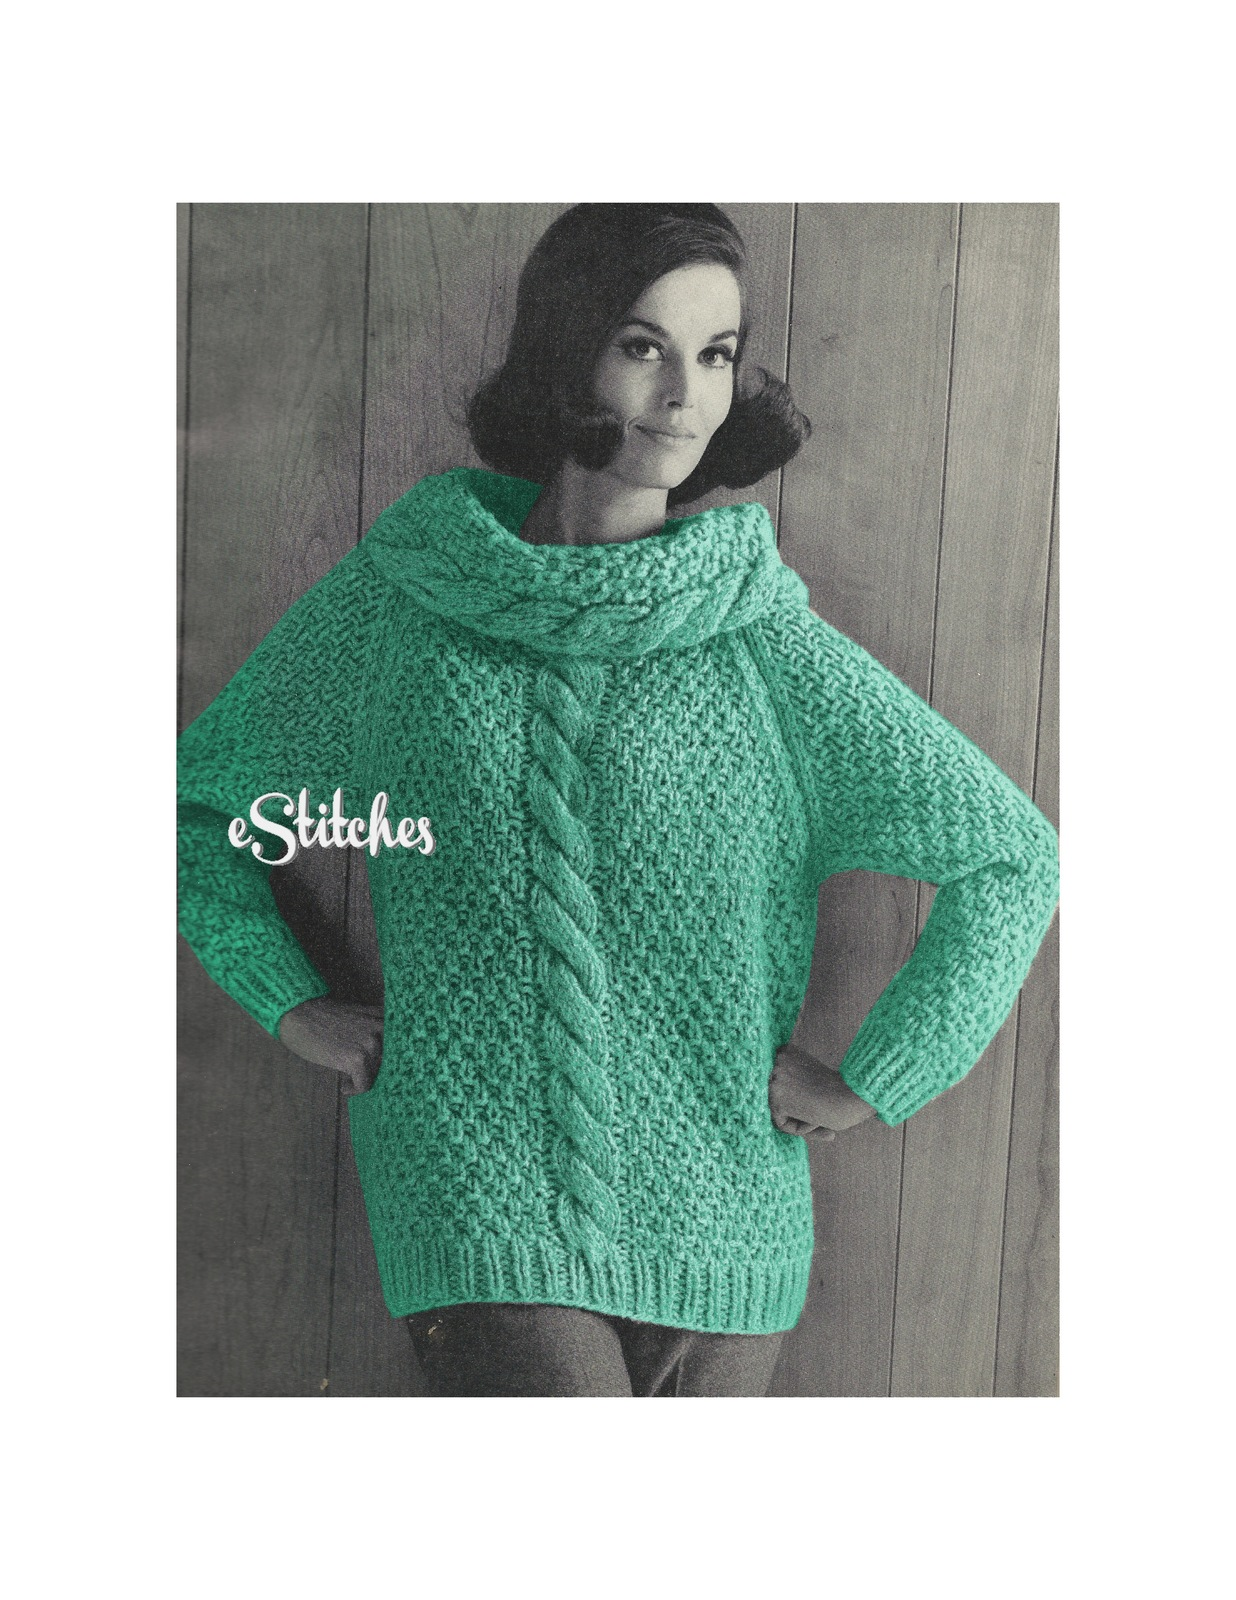 Bulky Sweater Knitting Patterns : 1960s Cable Knit Rolled Collar Super-Bulky Sweater - Knit pattern (PDF 7827) ...